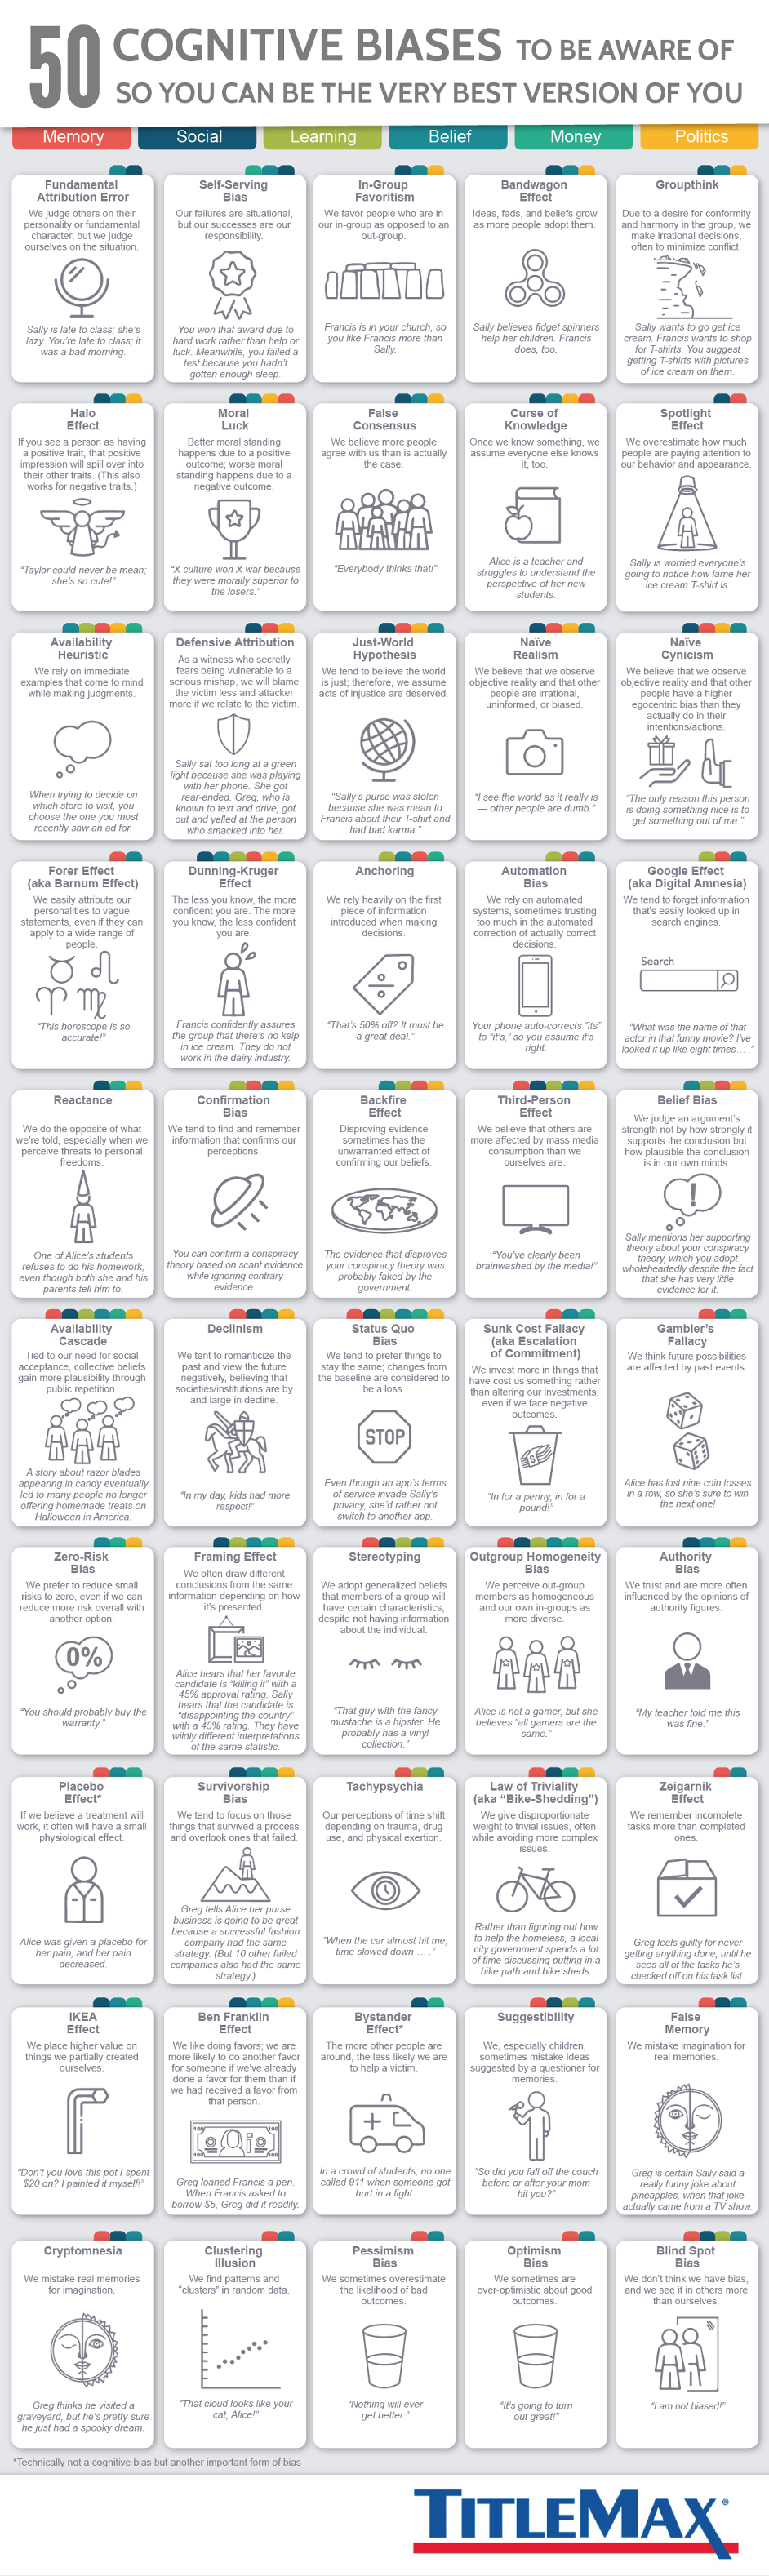 50 Cognitive Biases to be Aware of so You Can be the Very Best Version of You #infographic